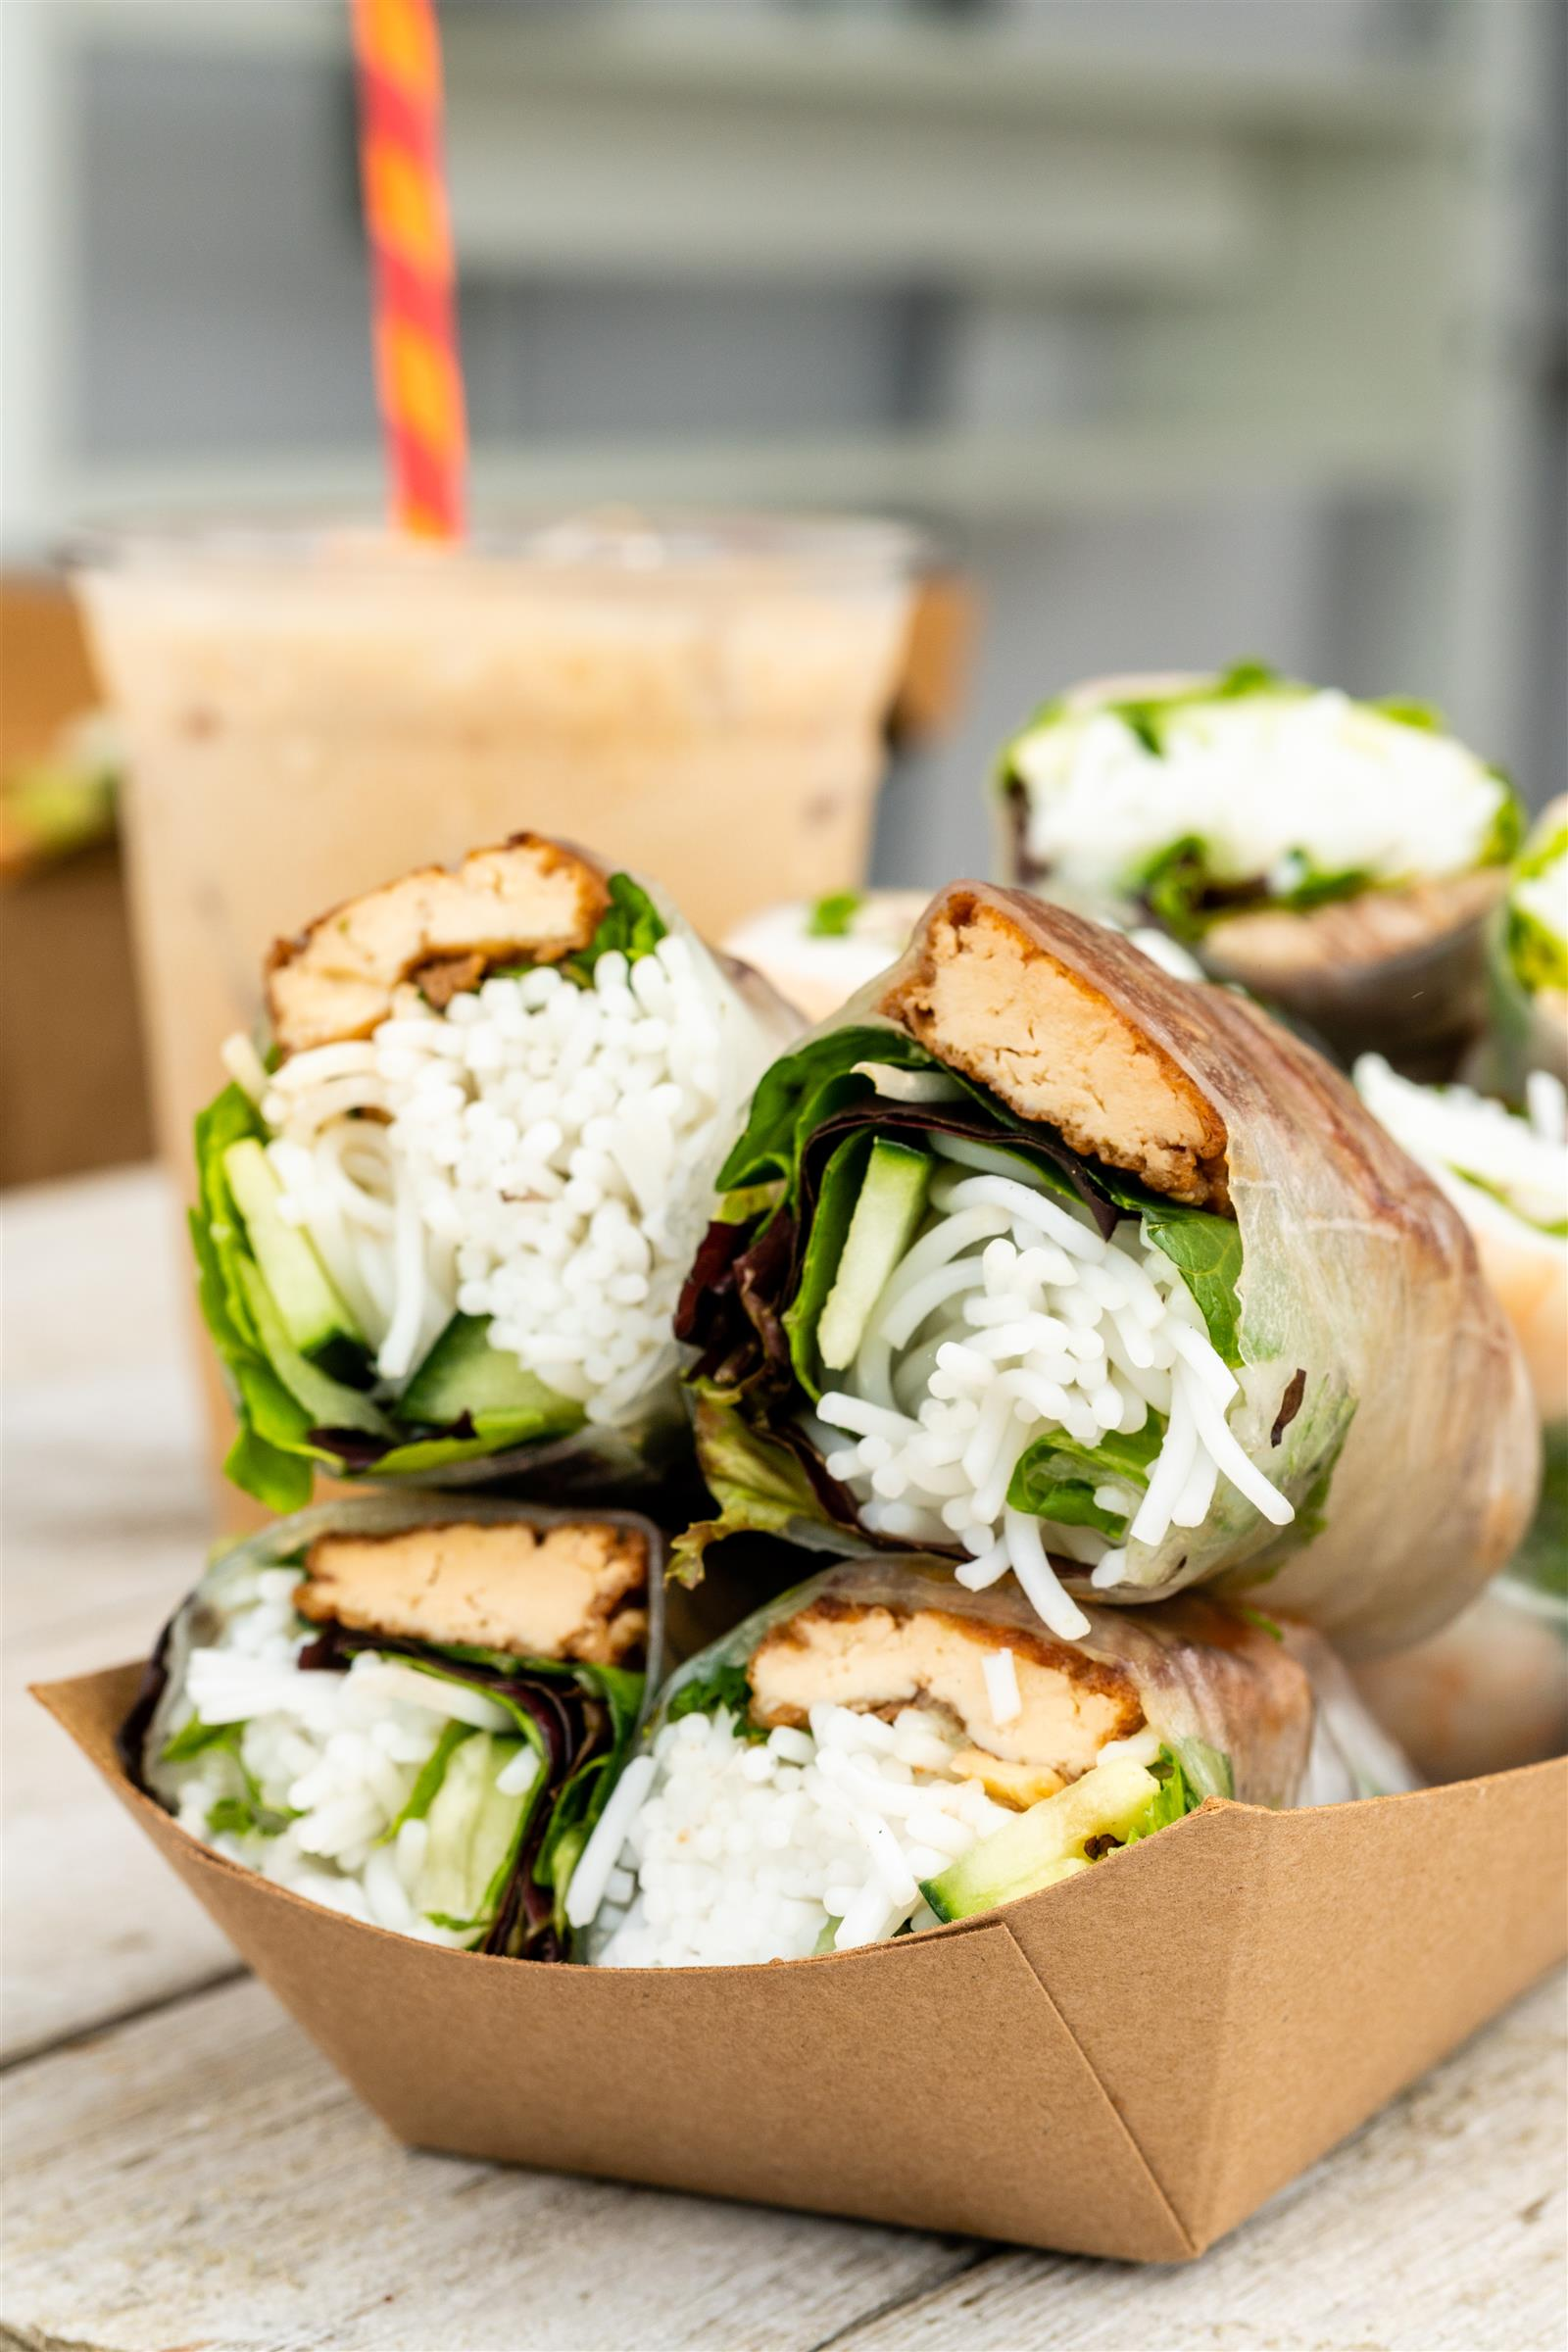 Tufu, lettuce, cucumber, and white rice wrap in a cardboard box on a white wooden table infront of iced beverage